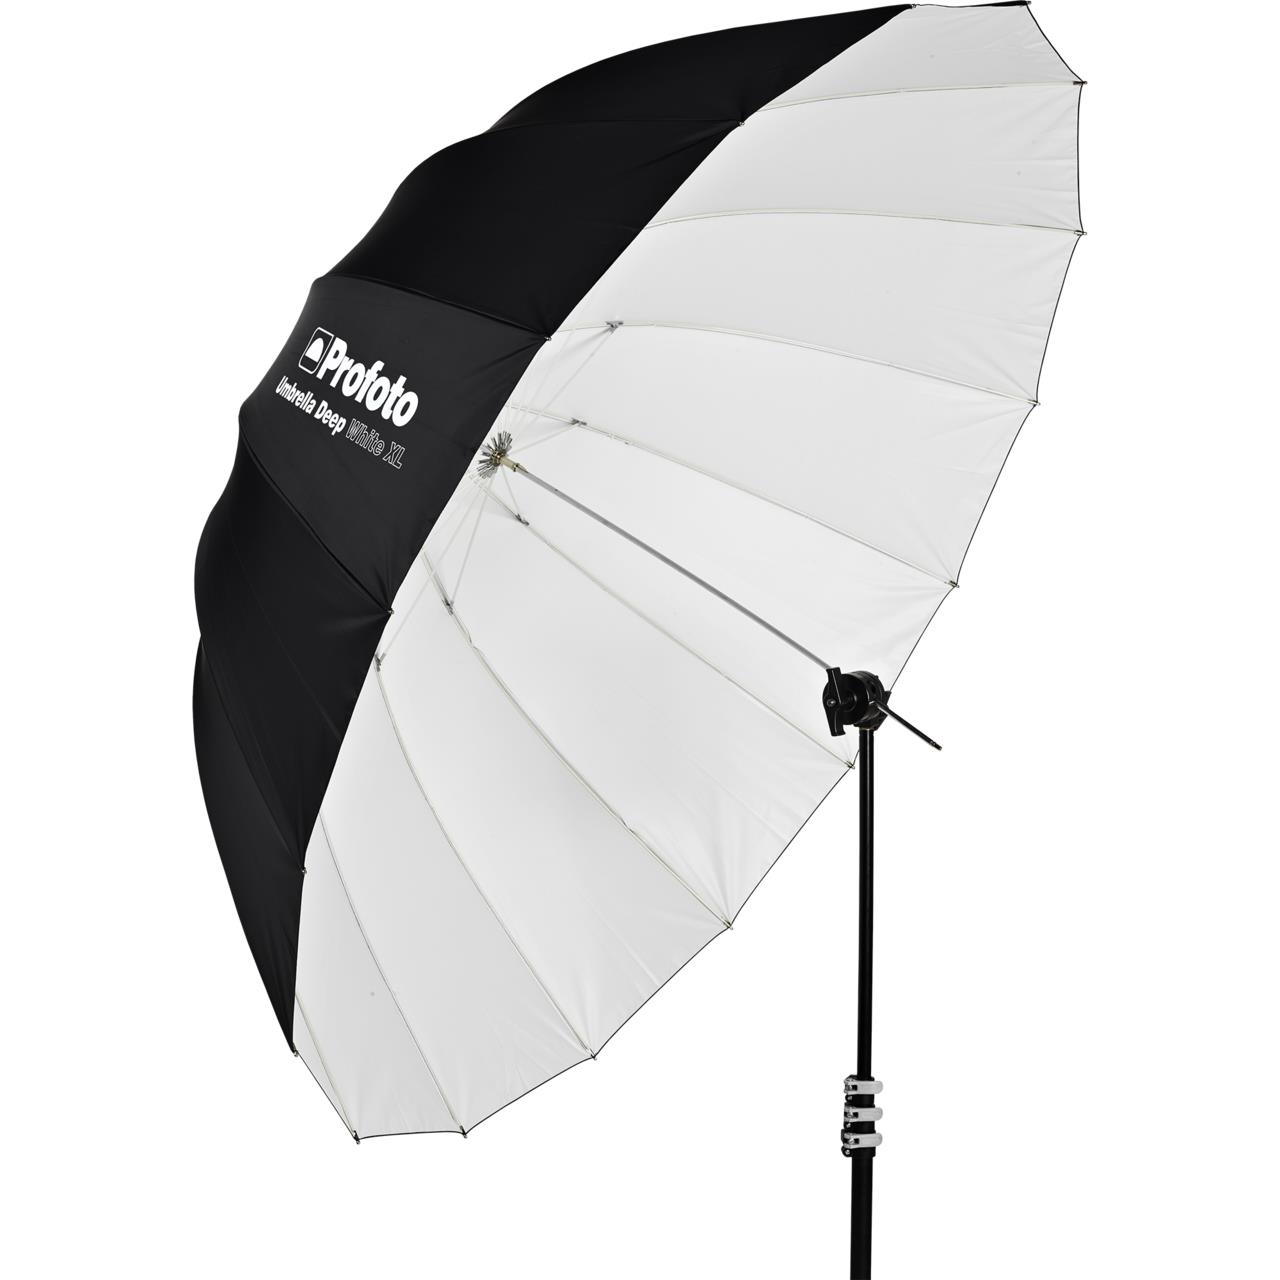 65in/165cm - Profoto Umbrella Deep White XL